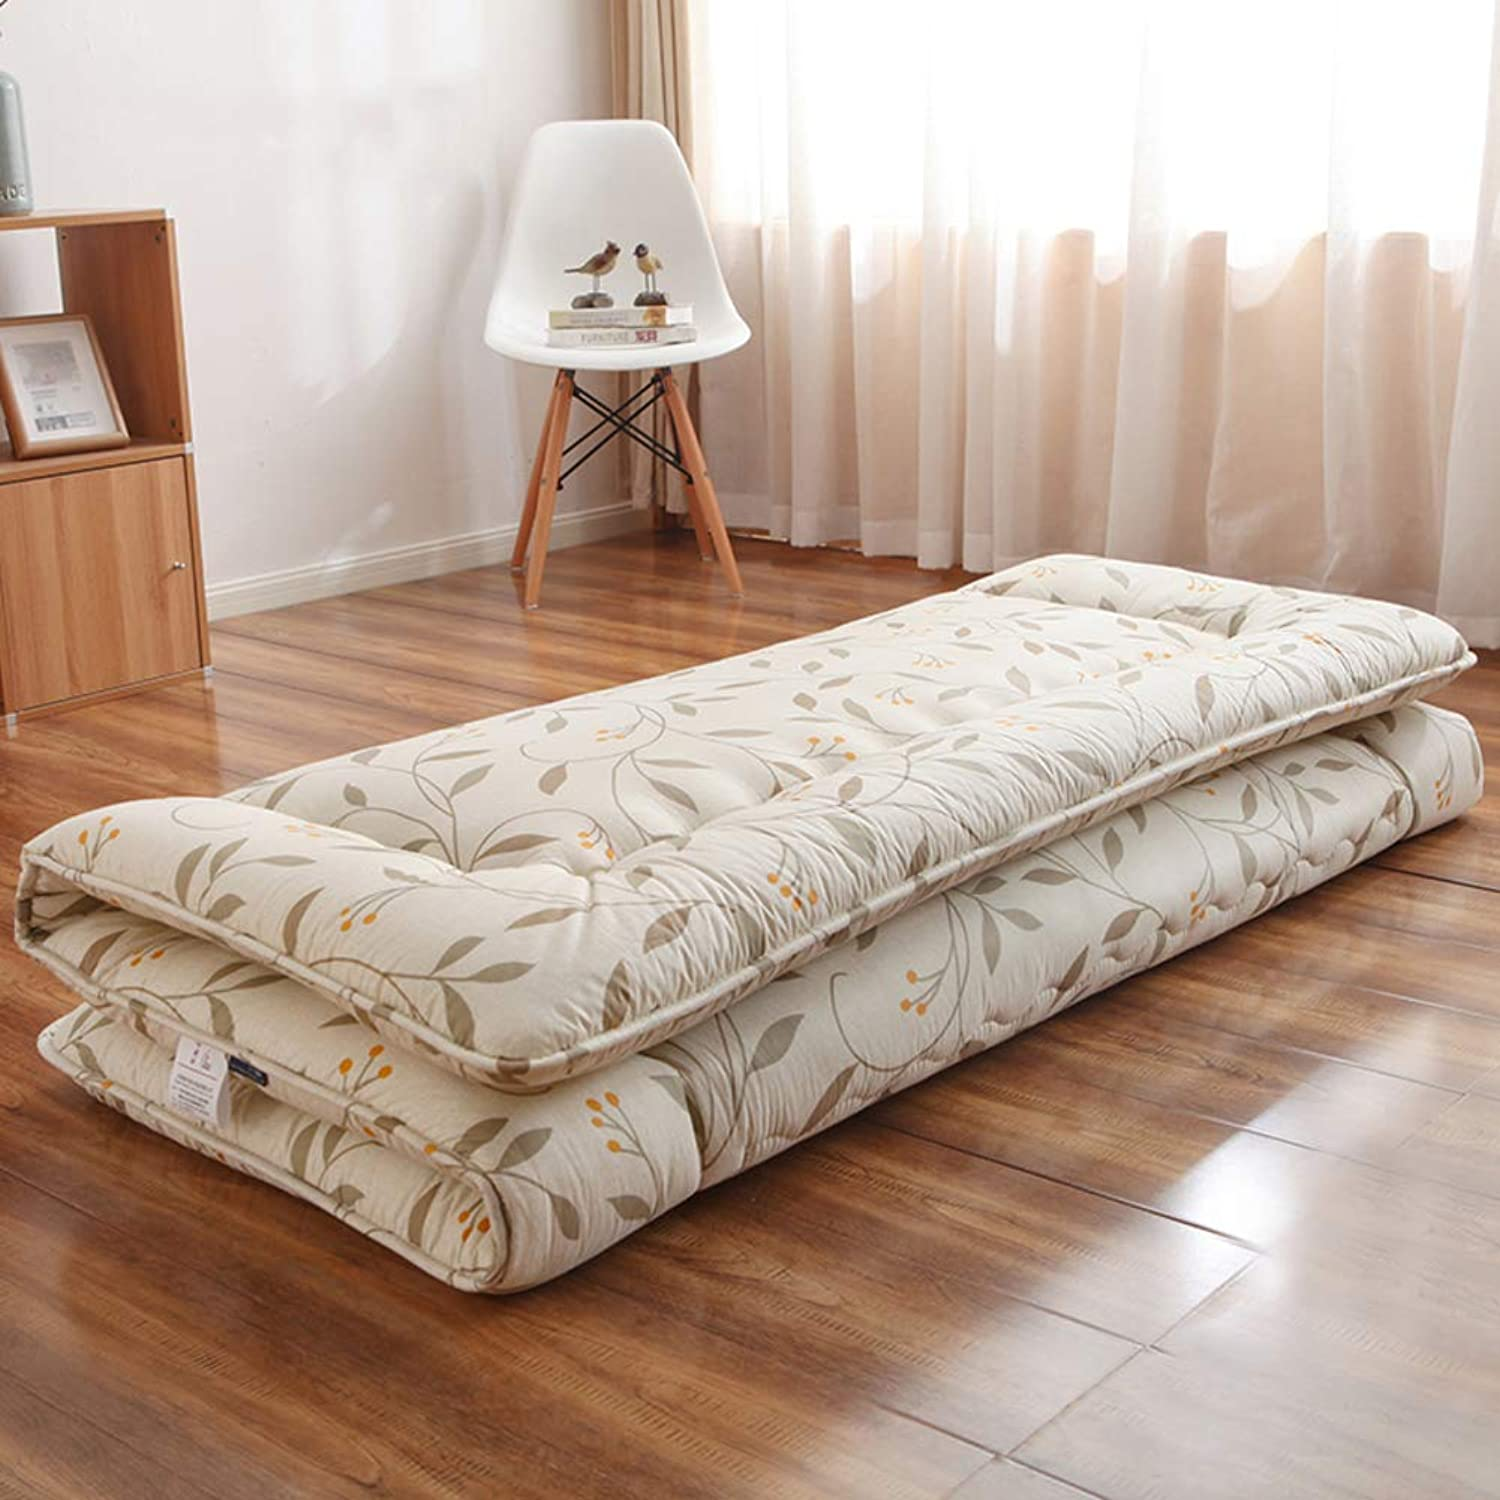 Thick Futon Tatami Floor Mattress, Quilted Japanese Traditional Folding Sleeping Floor mat Pad for Student Dorm-A 90x190cm(35x75inch)